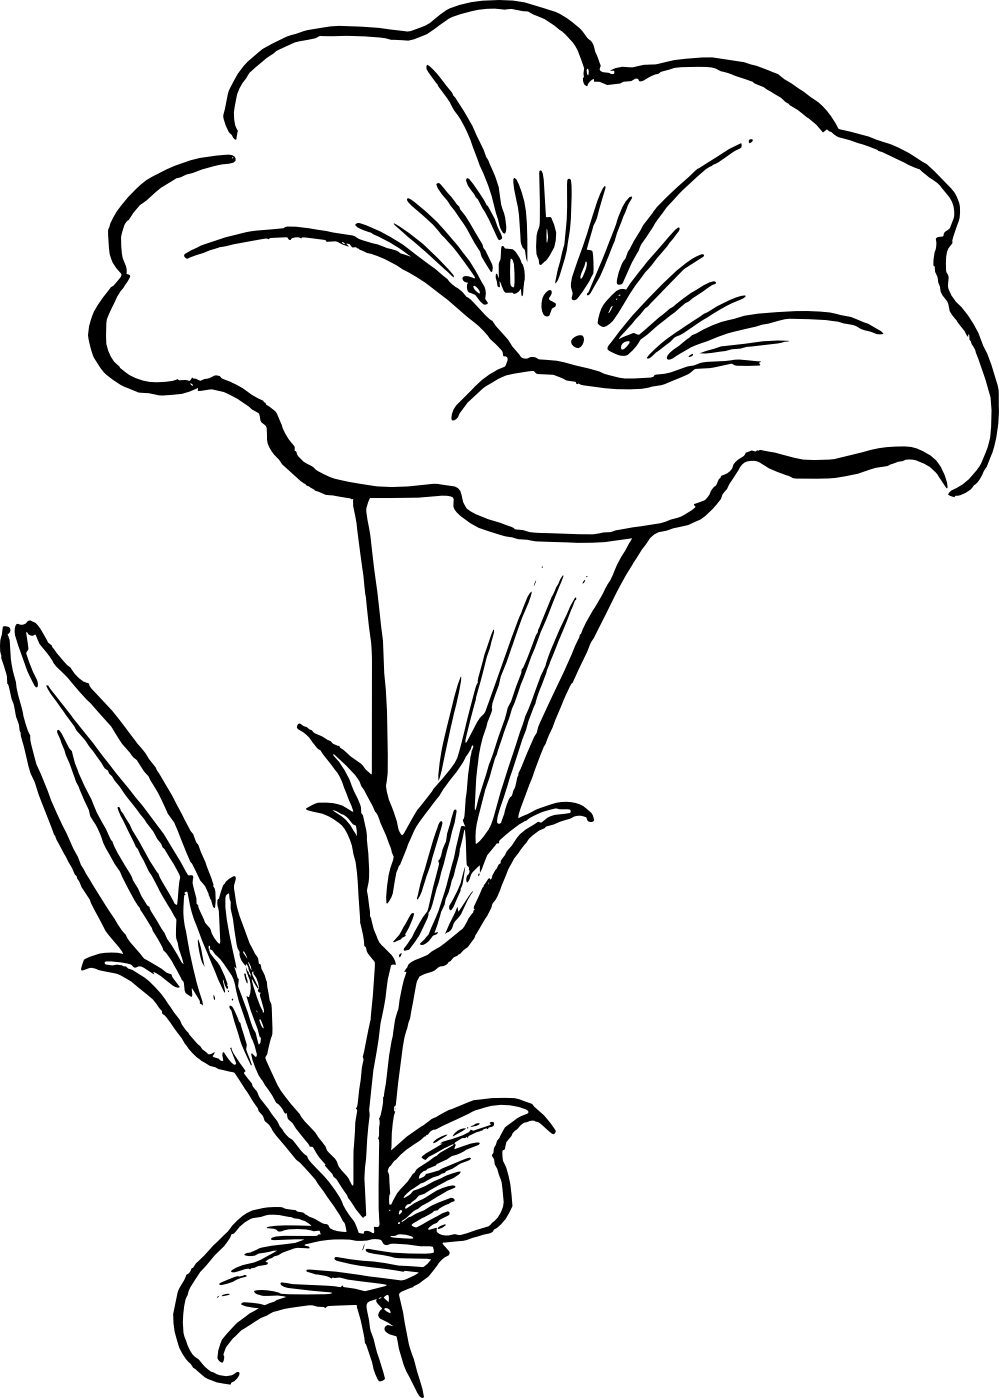 Jasmine plant clipart png black and white banner free library Jasmine PNG Black And White Transparent Jasmine Black And White.PNG ... banner free library